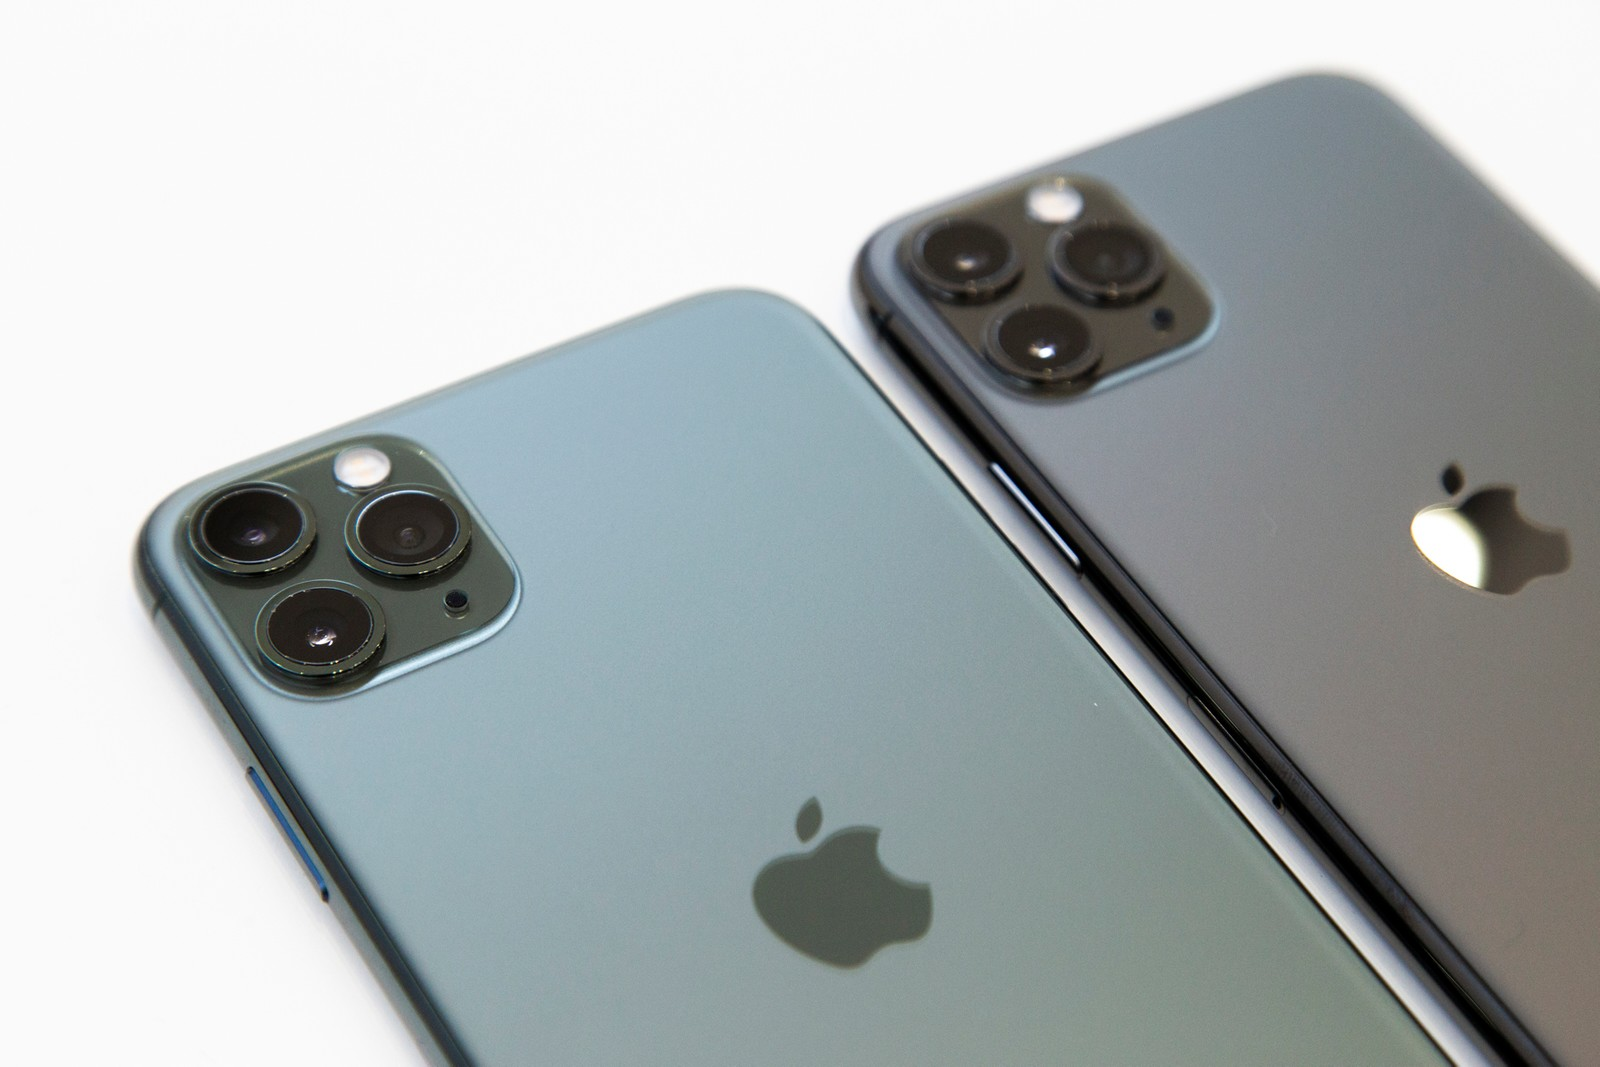 Apple iPhone 11 Keynote Event Highlights and Info 11 Max 11 Pro Macbook Pro 16